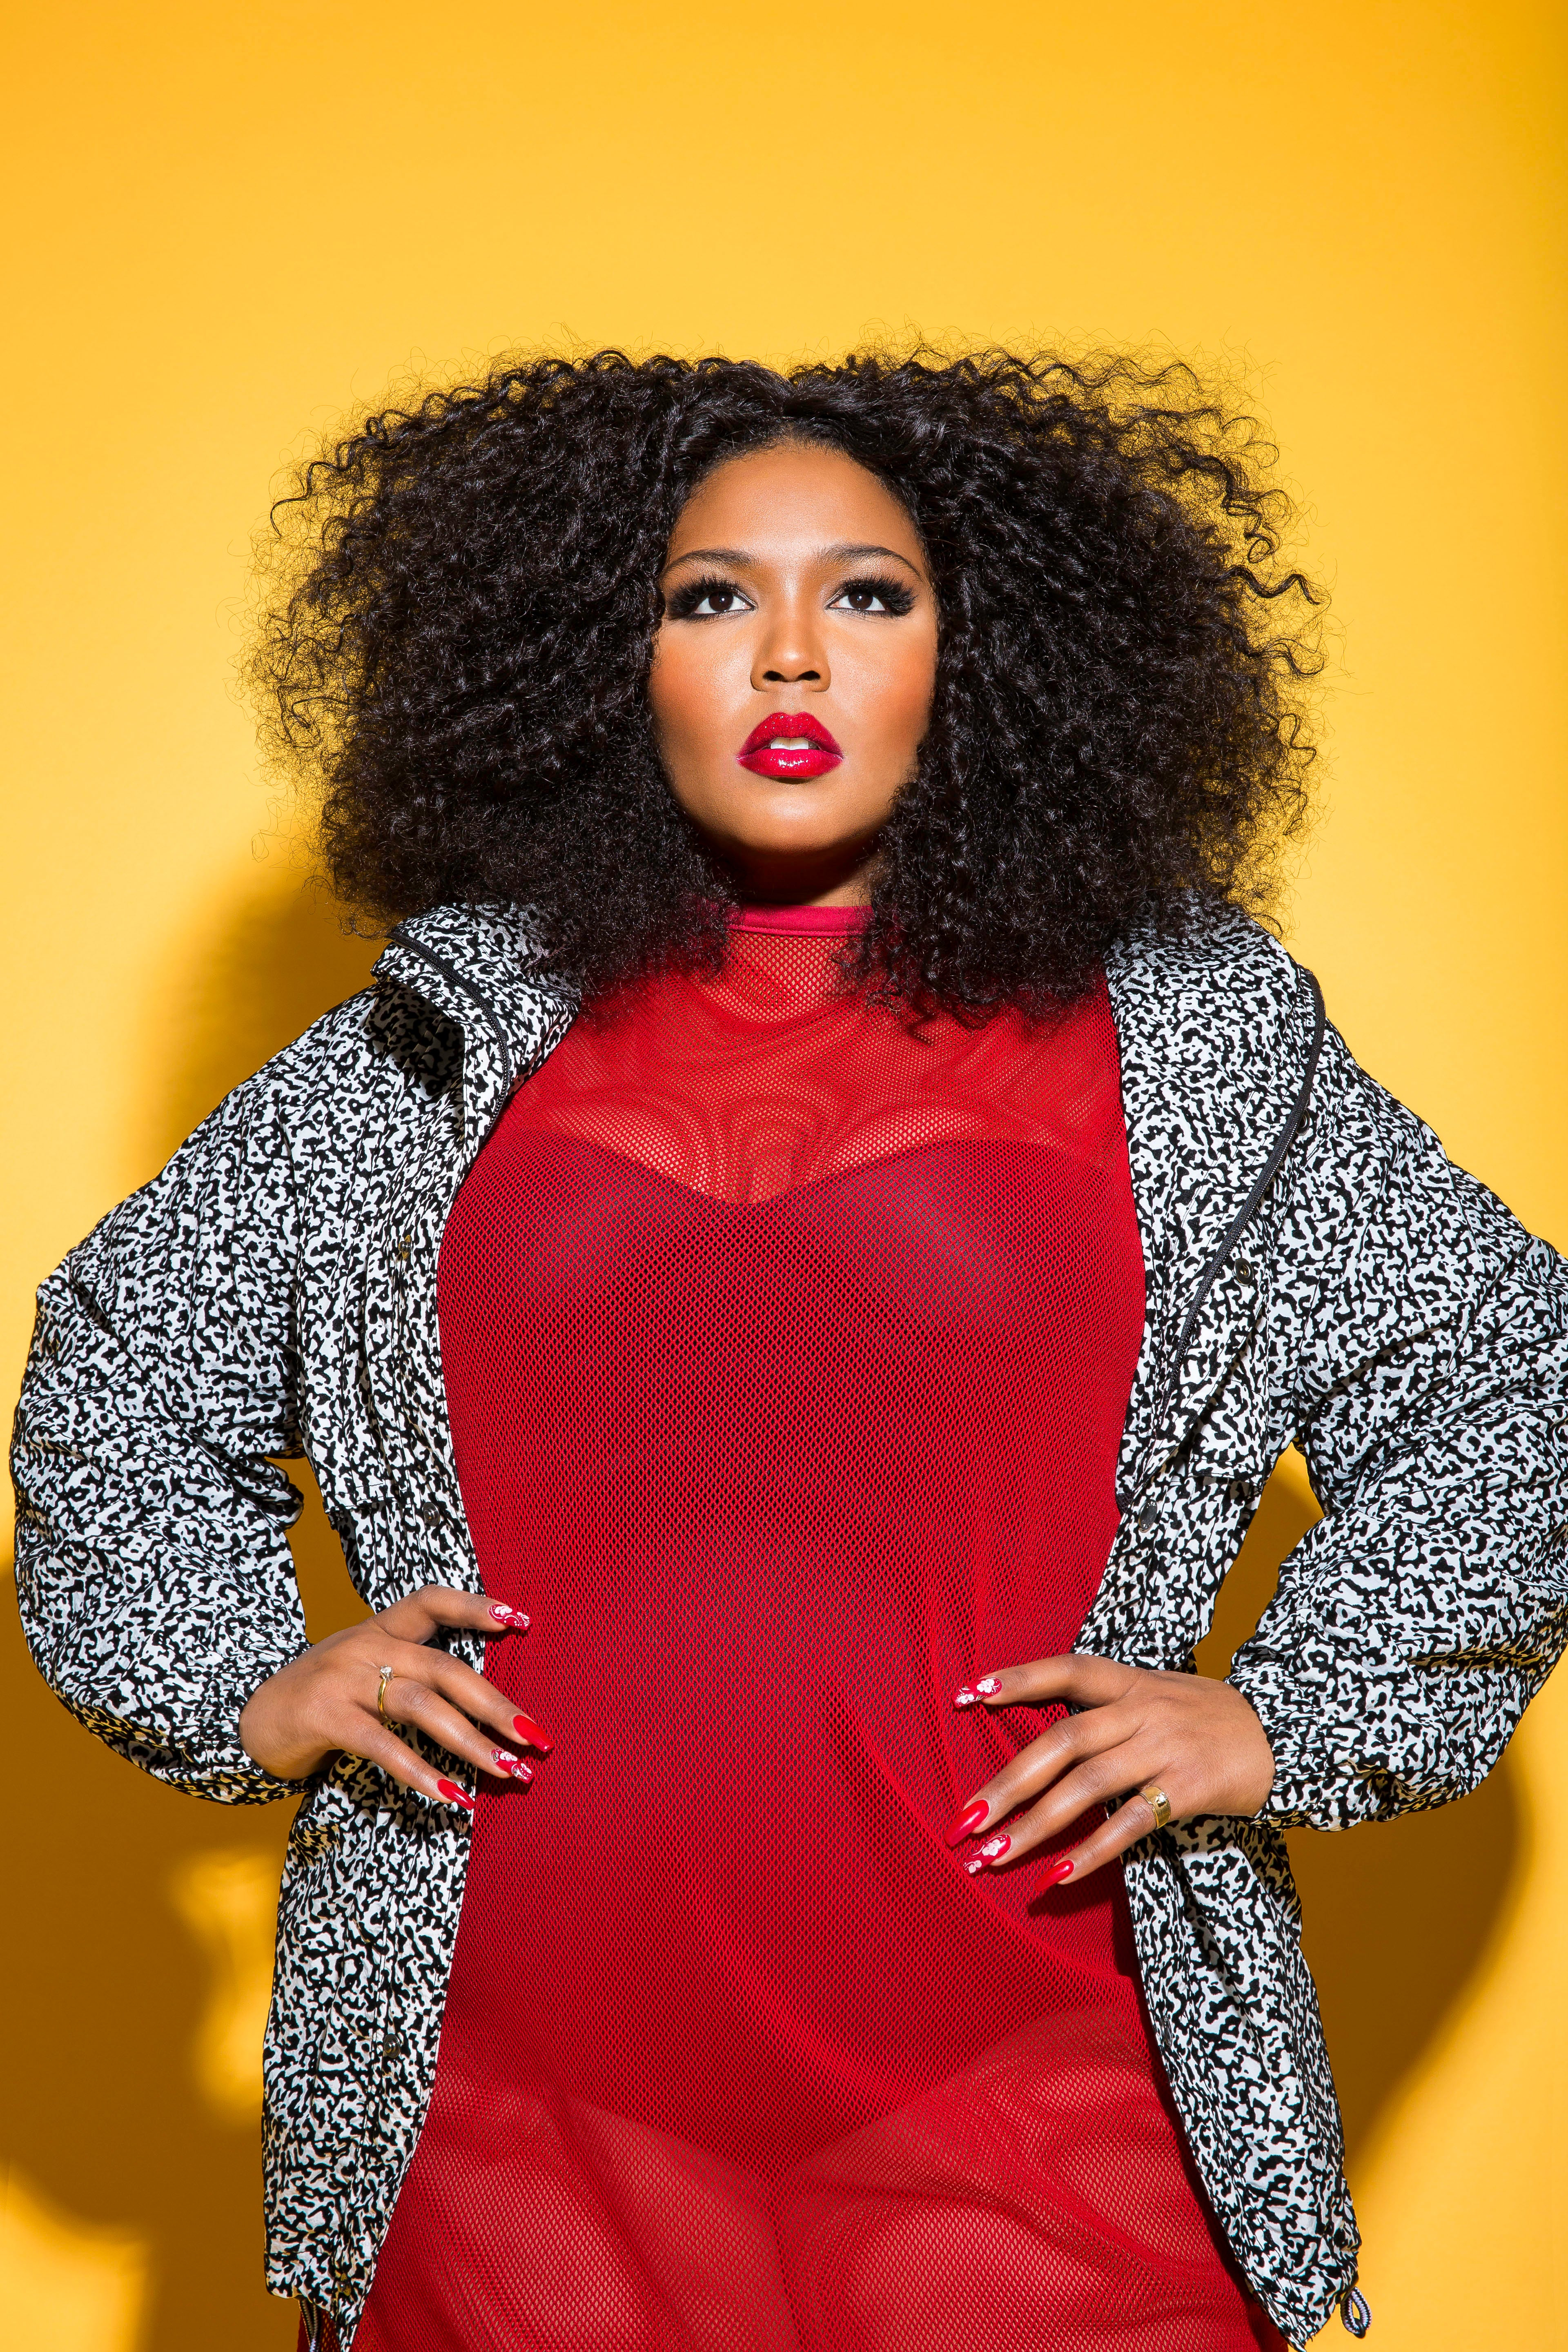 Lizzo's 'Cuz I Love You' Leaves The Door Open For Black Women